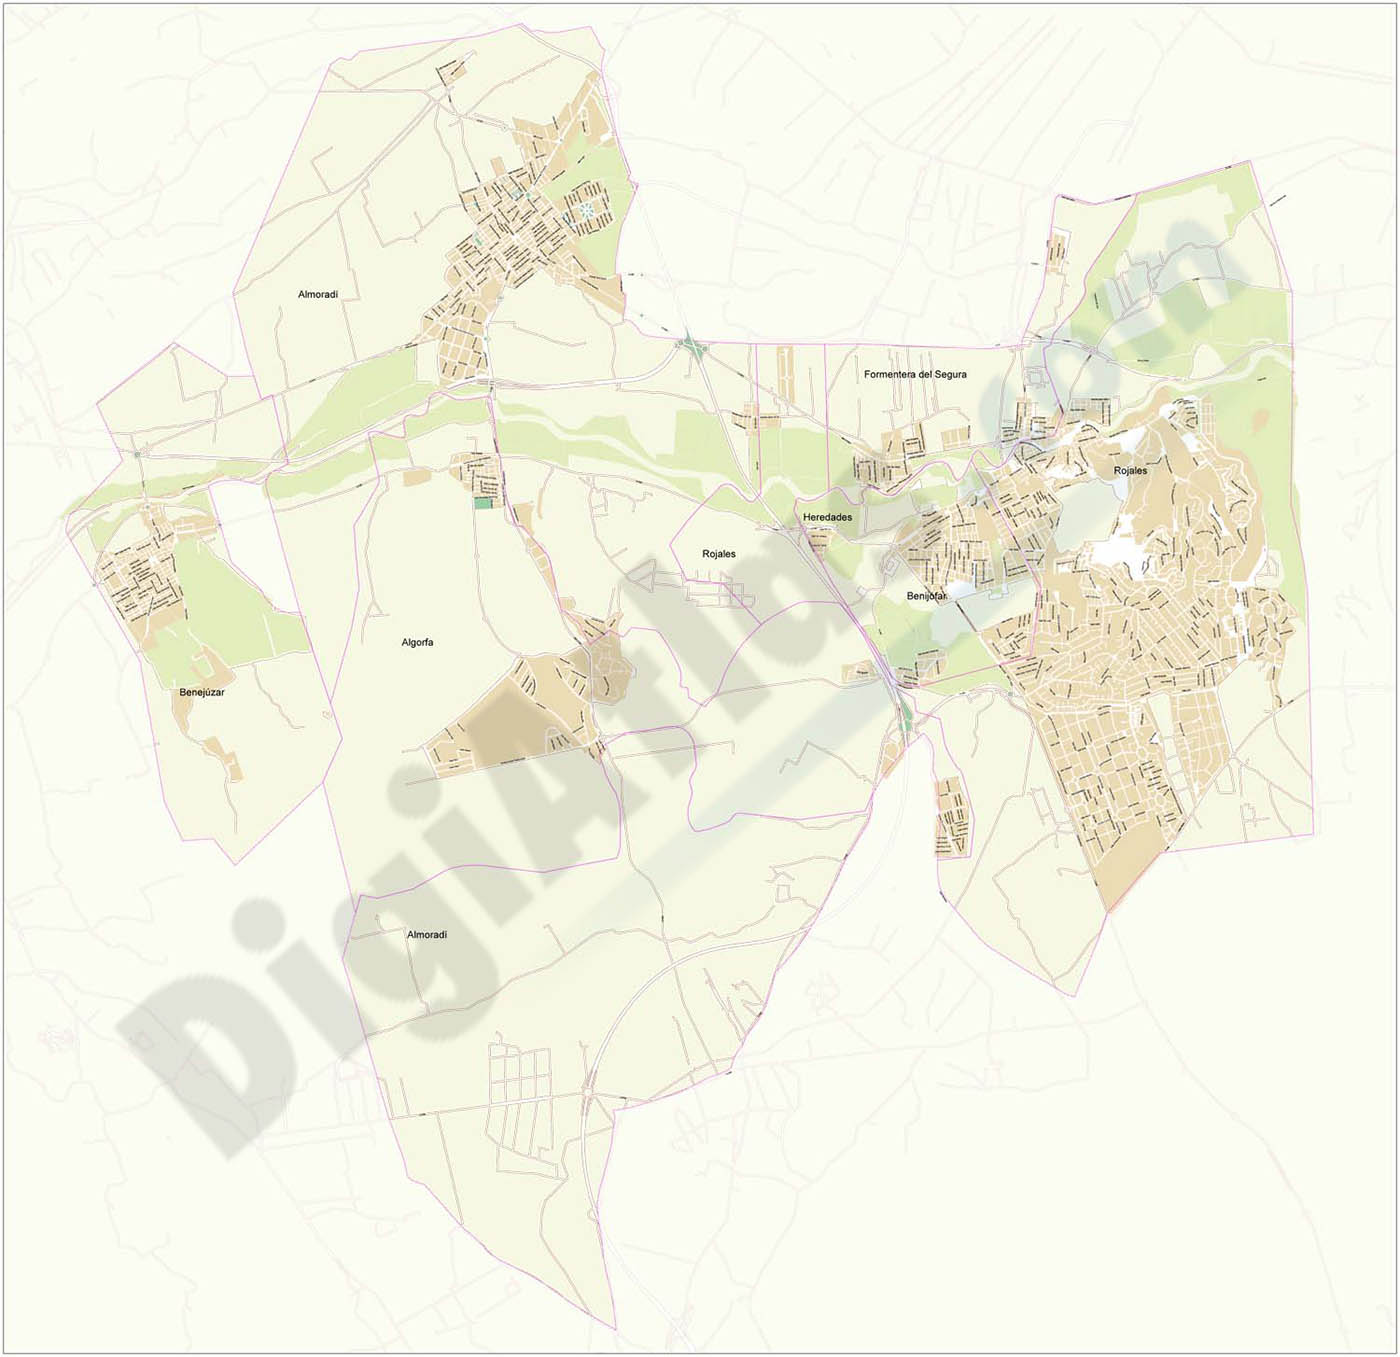 Almoradi and surrounding area - city map